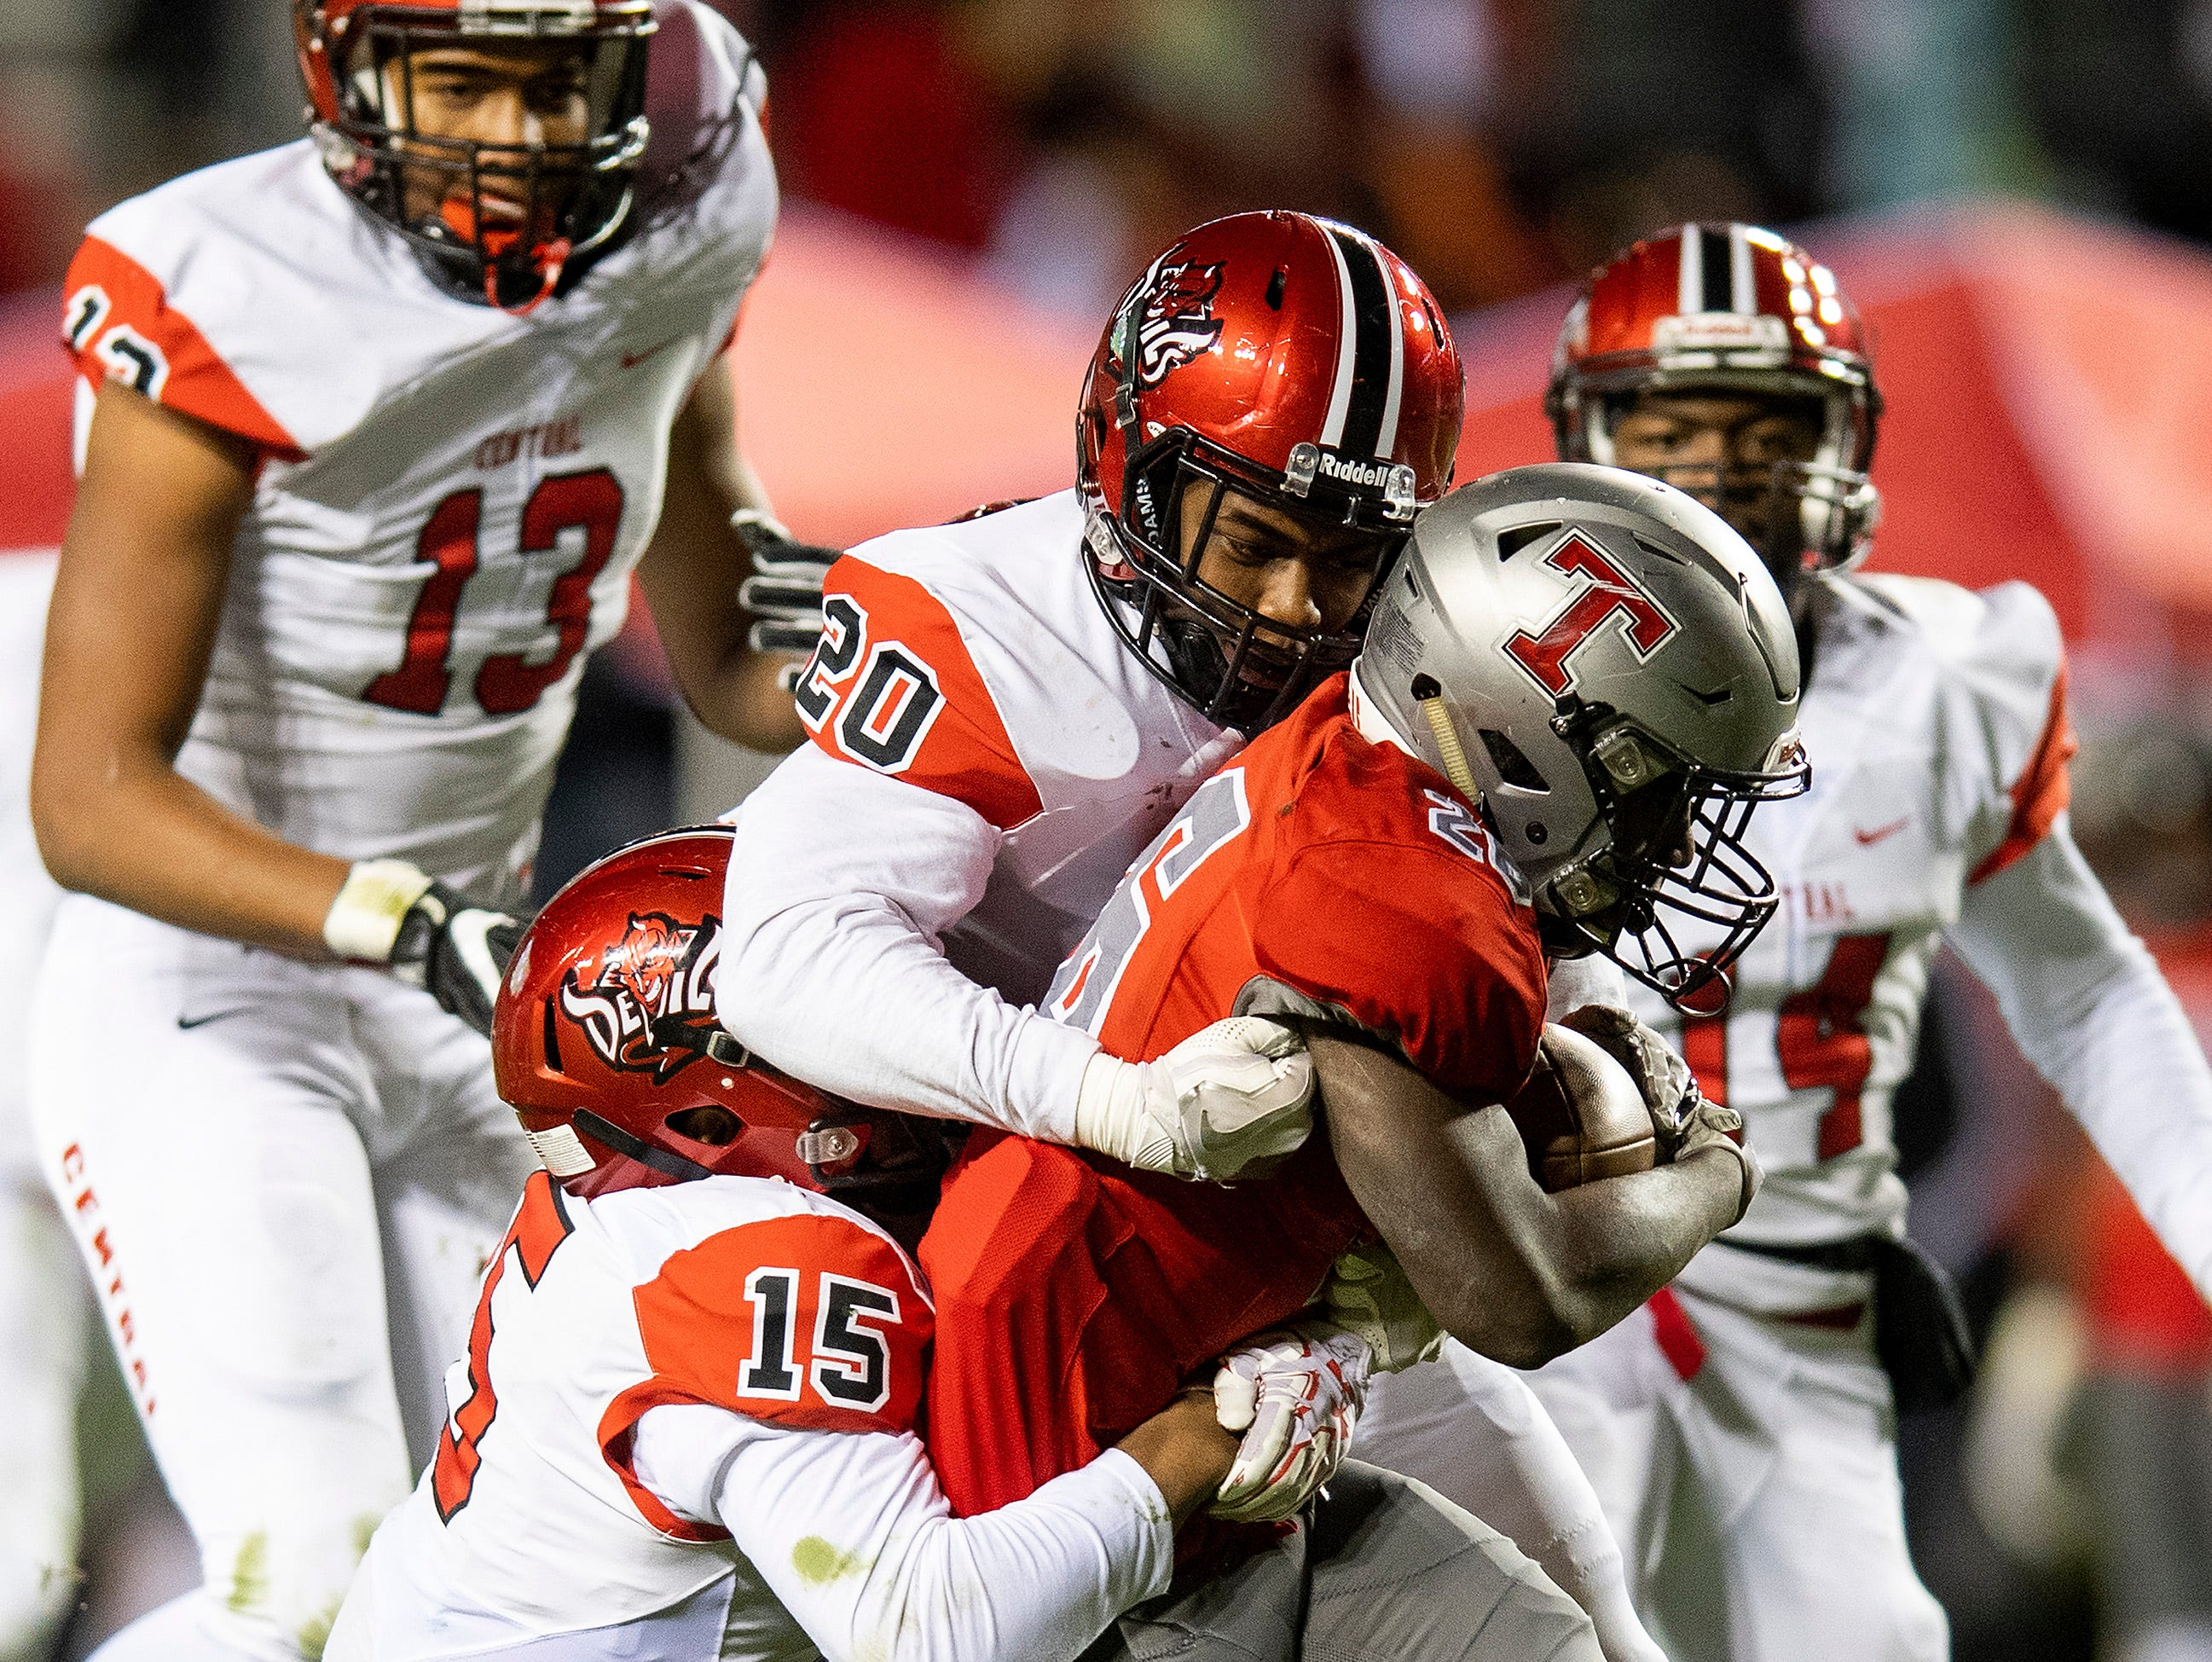 Thompson's Jarrett Crocket is stopped by Central-Phenix City's Martaveous Caple (20) and Jadon Richardson during the AHSAA Class 7A State Championship Football Game at Jordan Hare Stadium in Auburn, Ala., on Wednesday evening December 5, 2018.